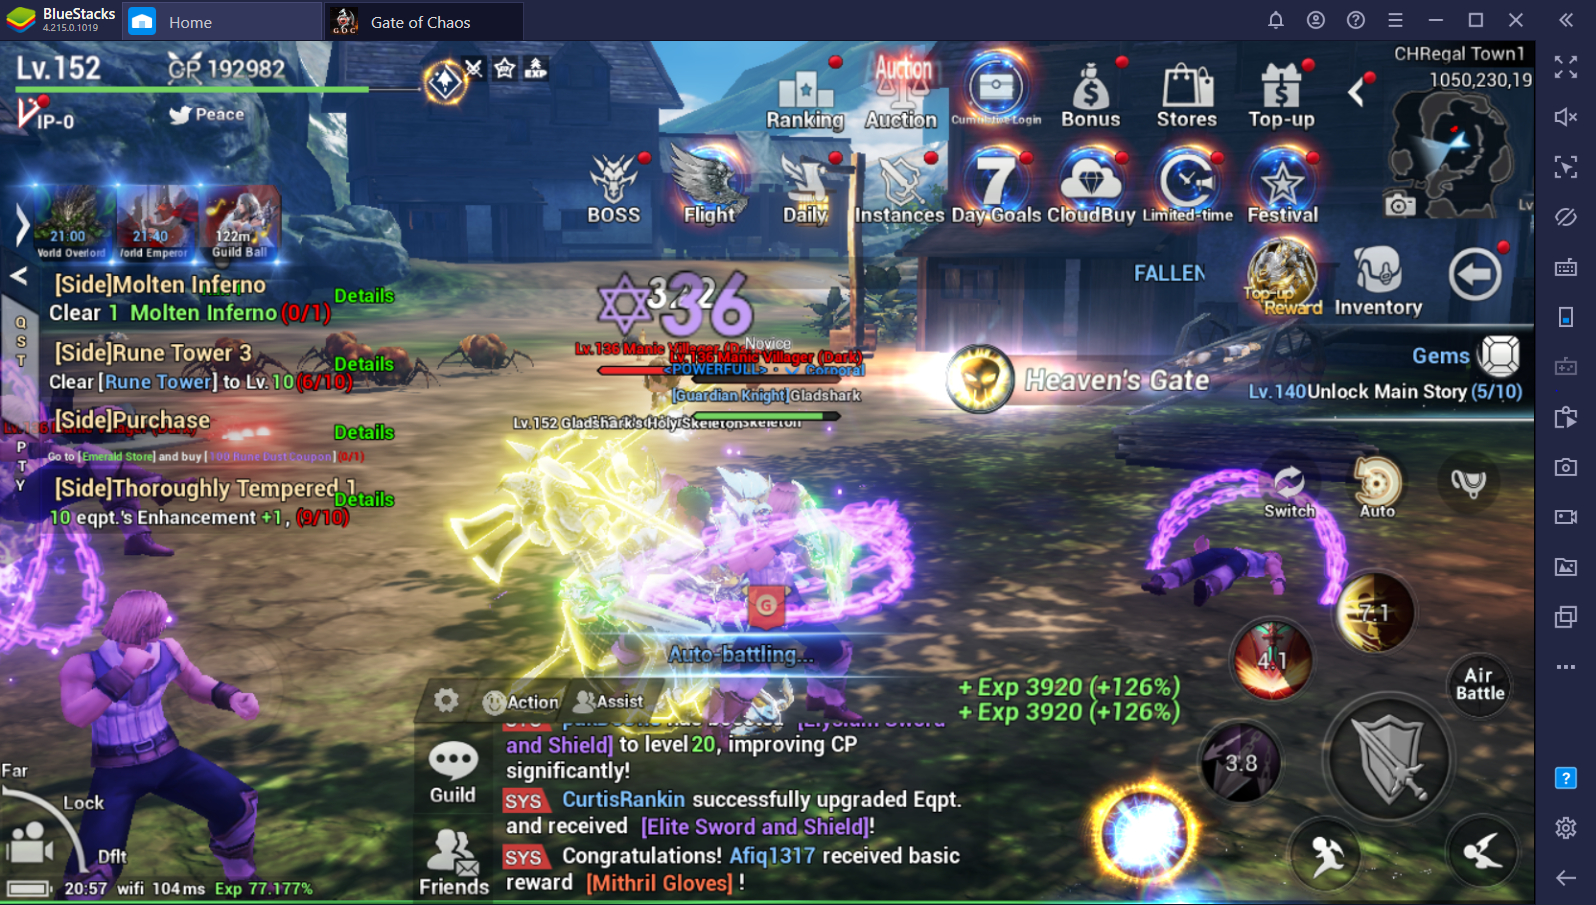 Maximize AFK Farming Rewards in Gate of Chaos on PC with BlueStacks